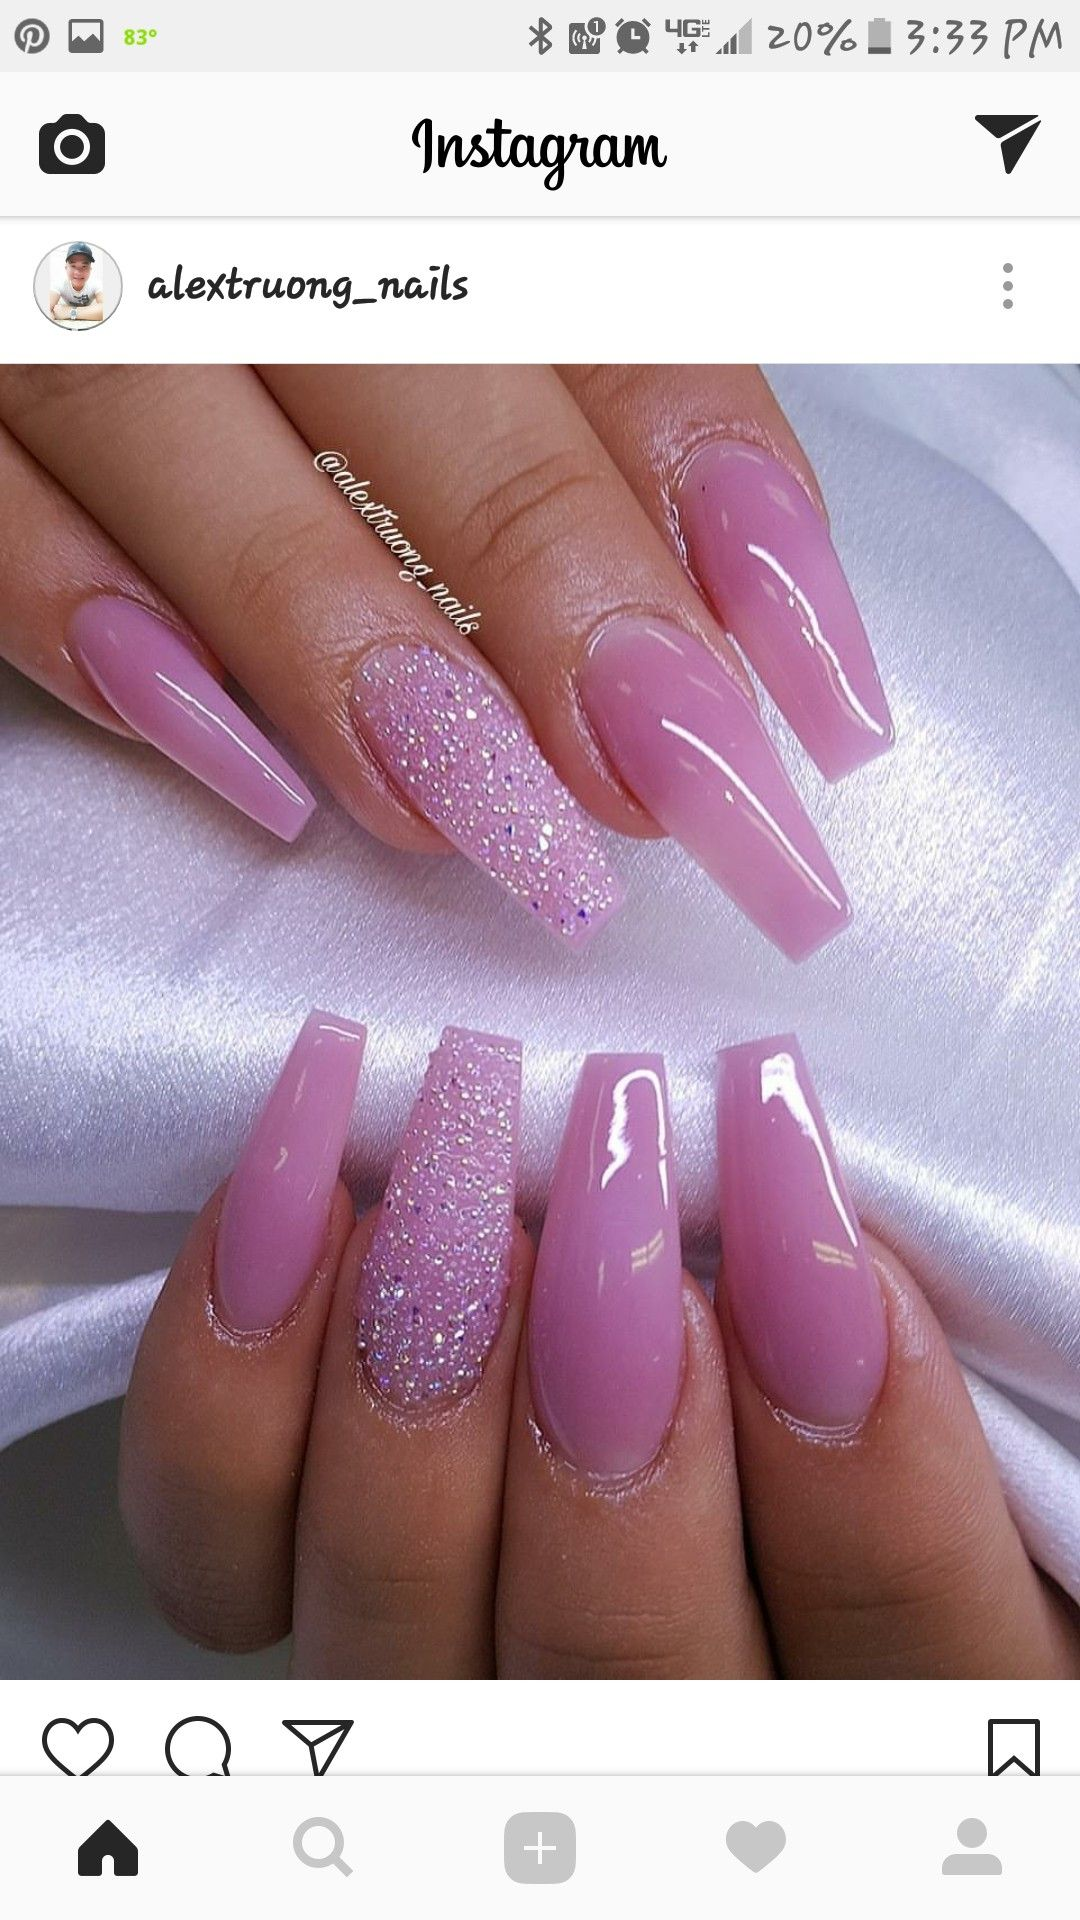 Pretty And Cute Nail Polish Color Nail Art Ideas Coffin Shaped Nails Unas Barbie Pink Nails Pink Glitter Nails Coffin Shape Nails